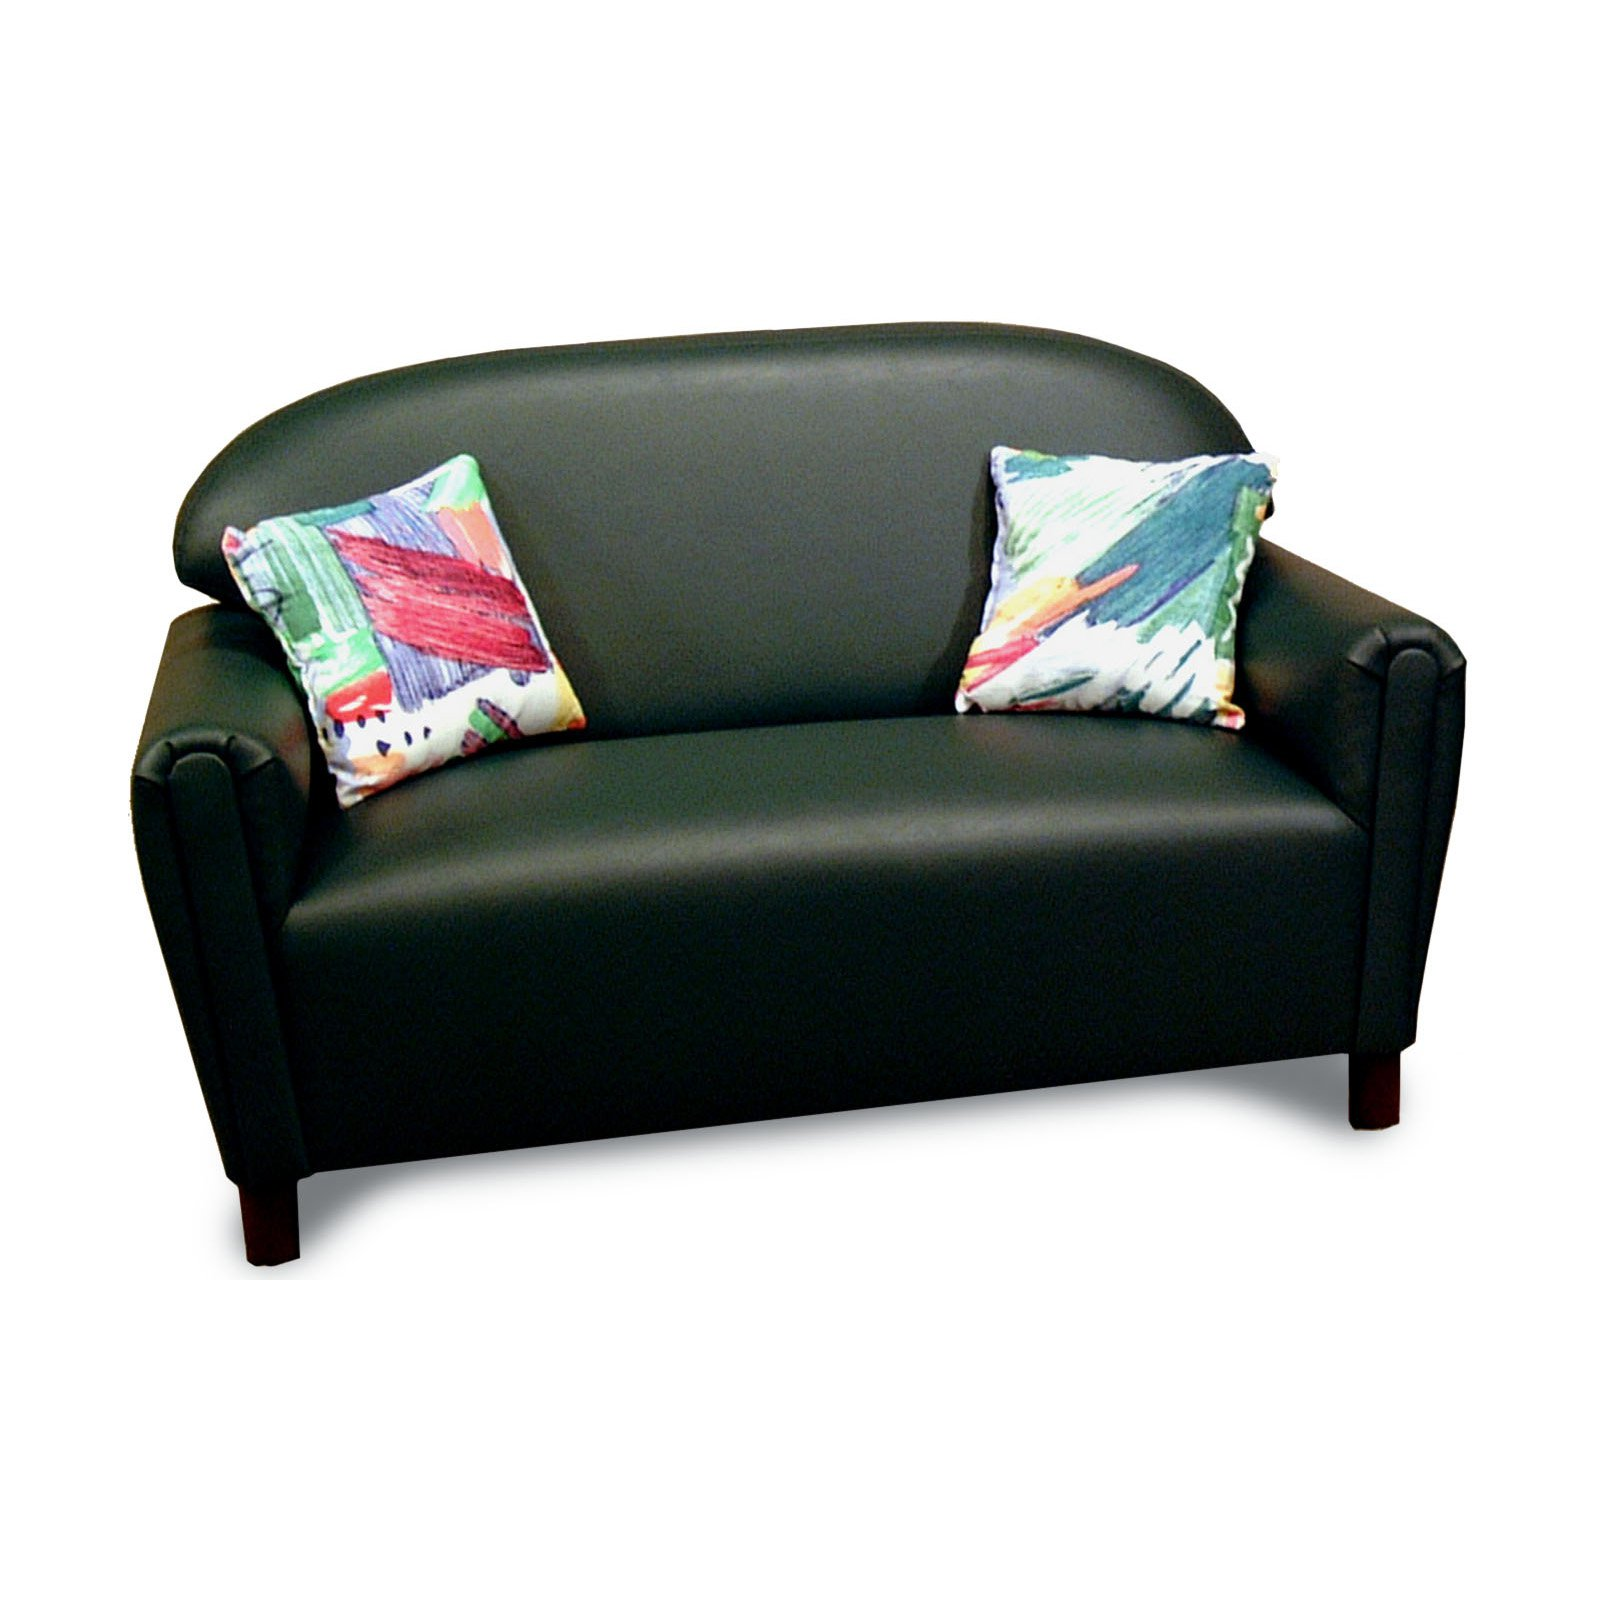 Brand New World Vinyl Upholstered School Age Sofa by Brand New World